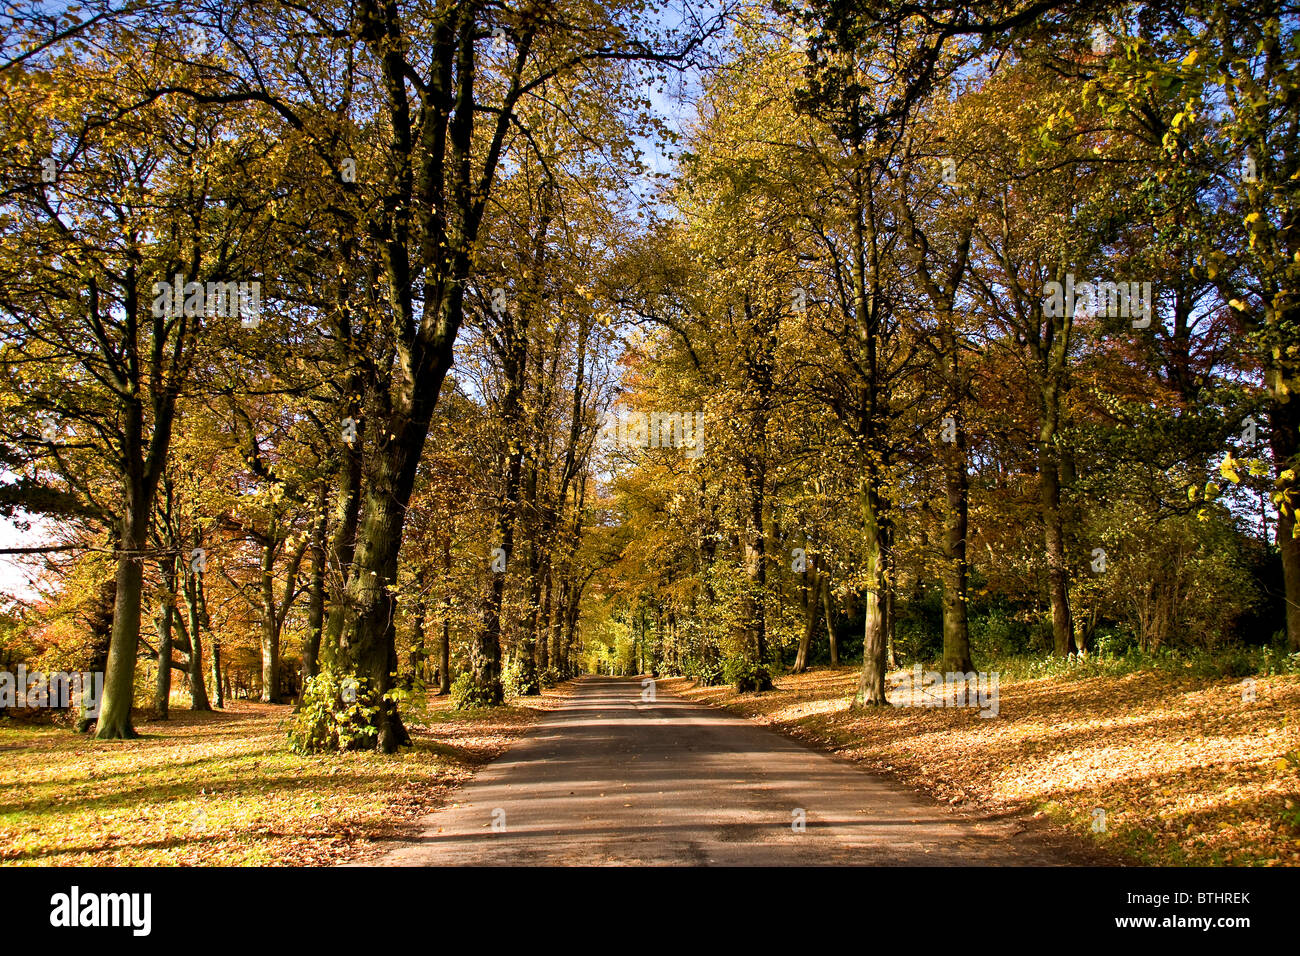 Avenue of trees in Autumn at the Camperdown Country Park main entrance in Dundee,UK Stock Photo